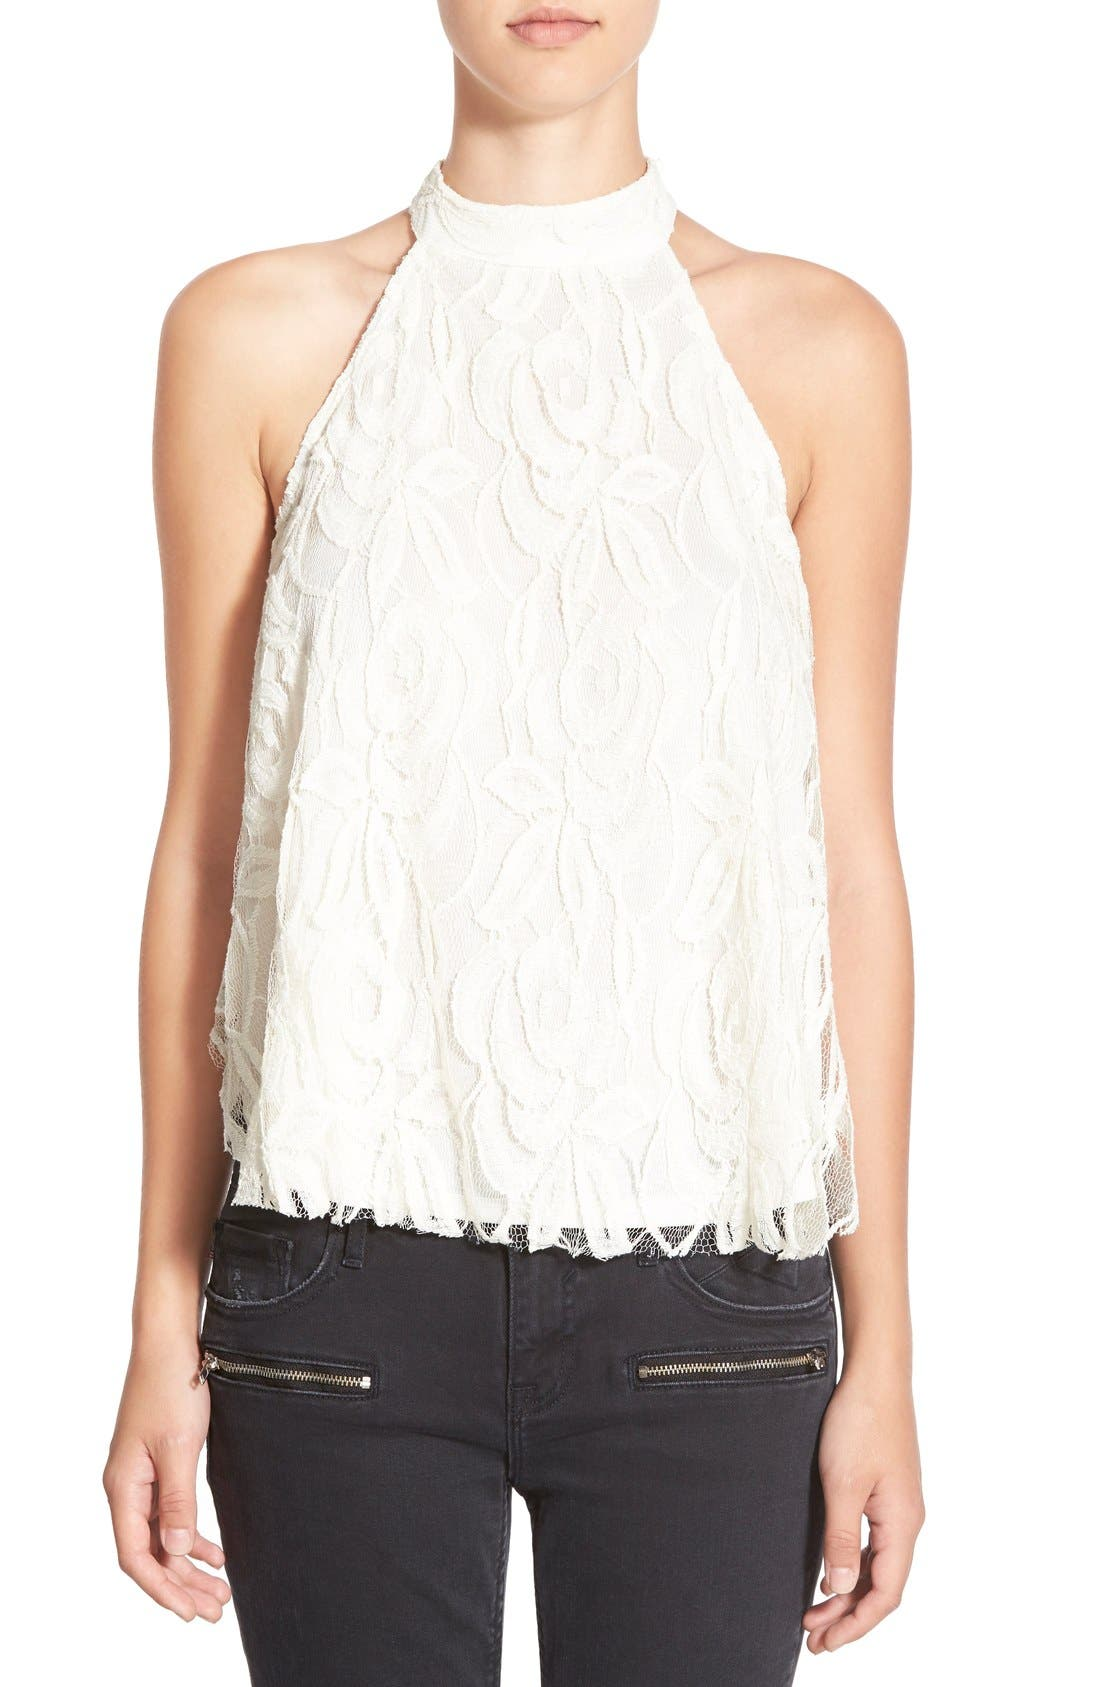 Alternate Image 1 Selected - Frenchi® Lace High Neck Tank